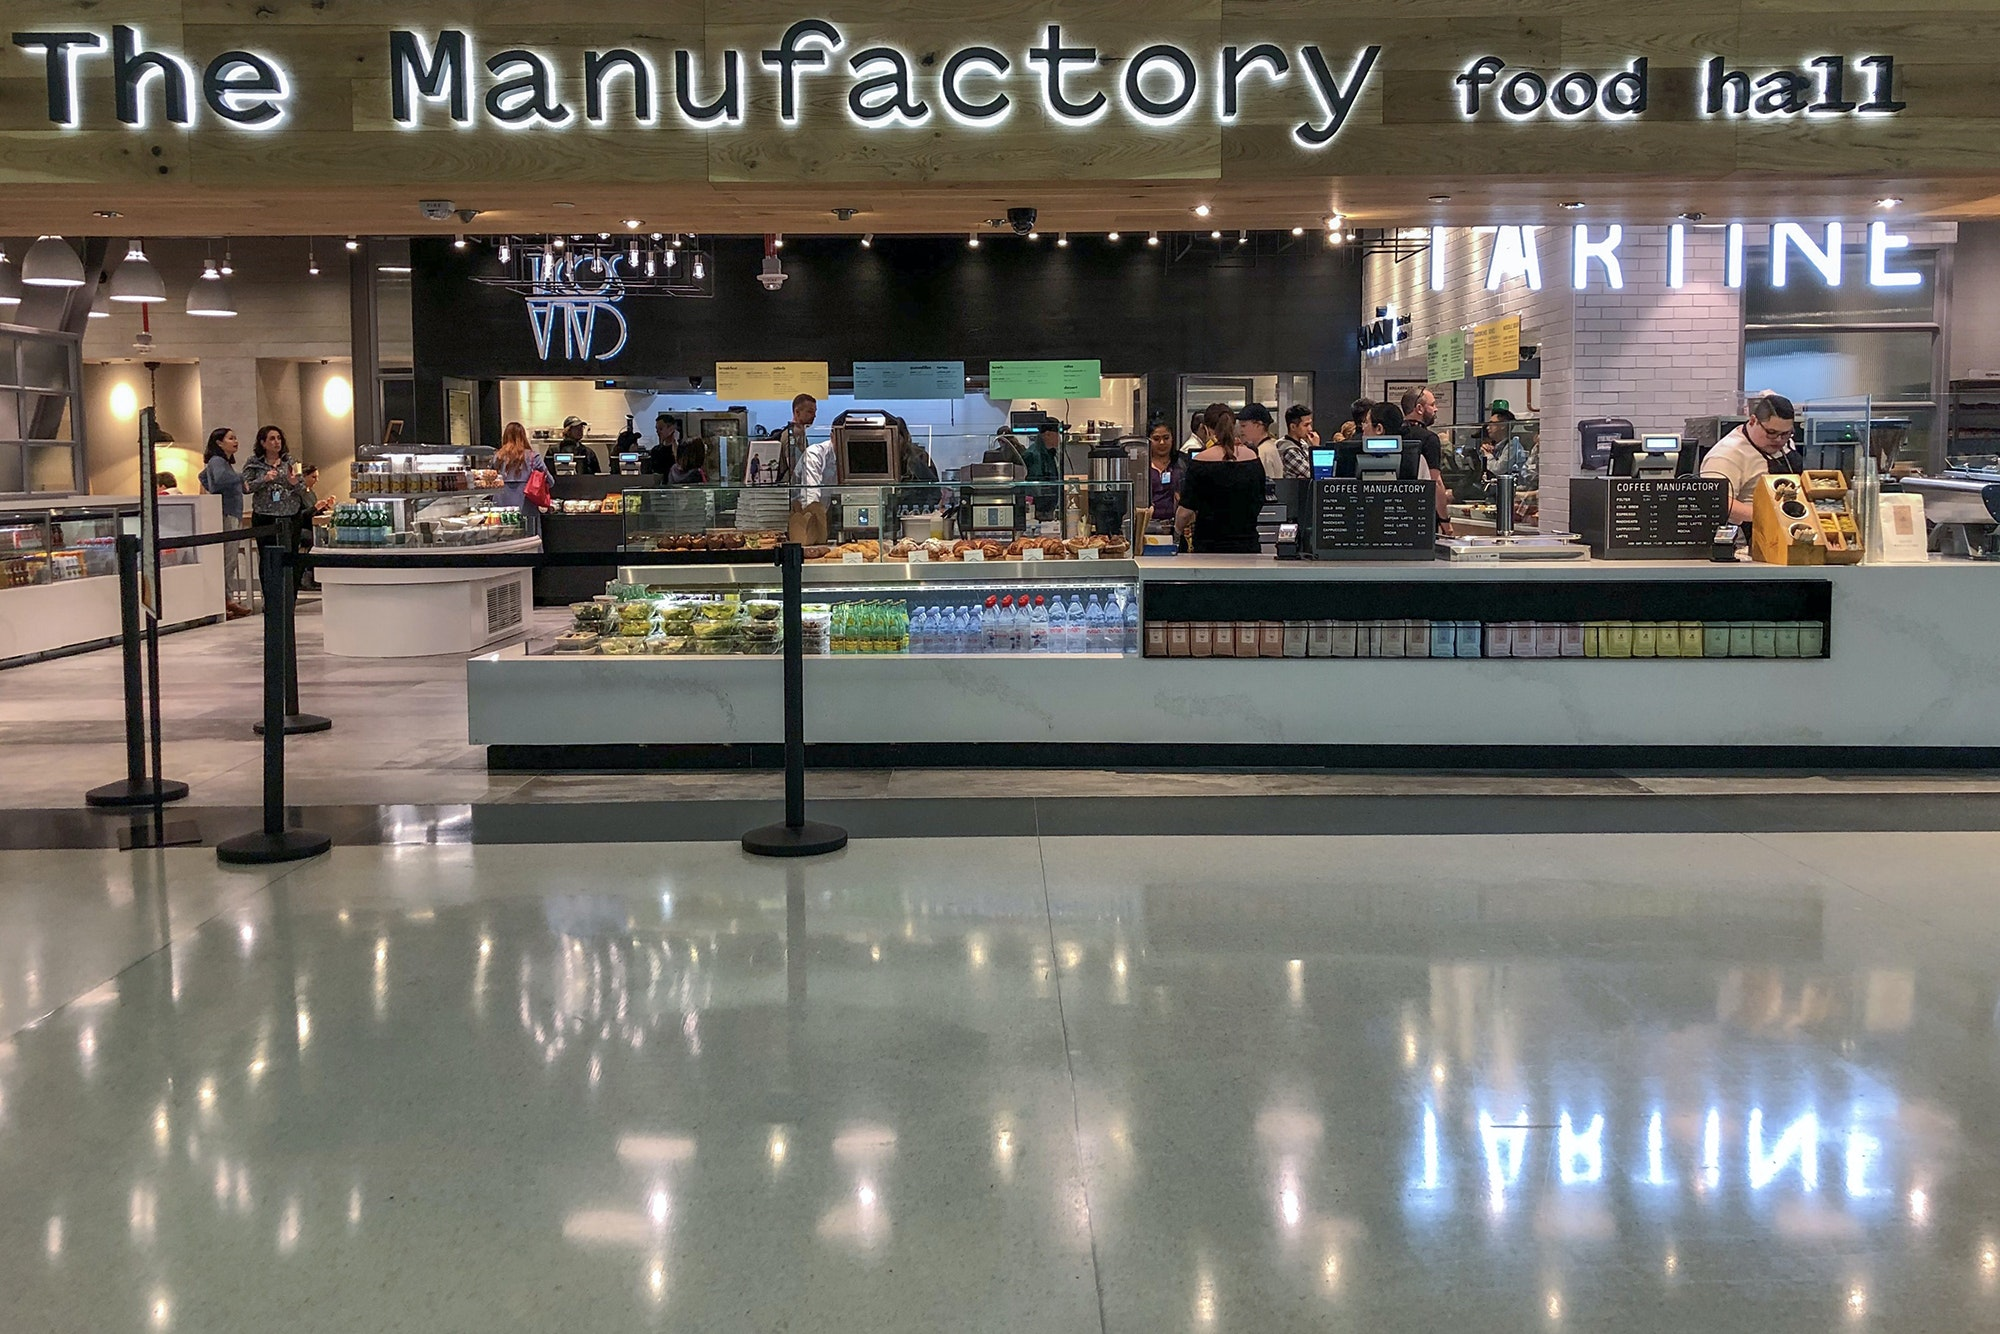 Three of San Francisco's most popular eateries have teamed up for an airport food hall.